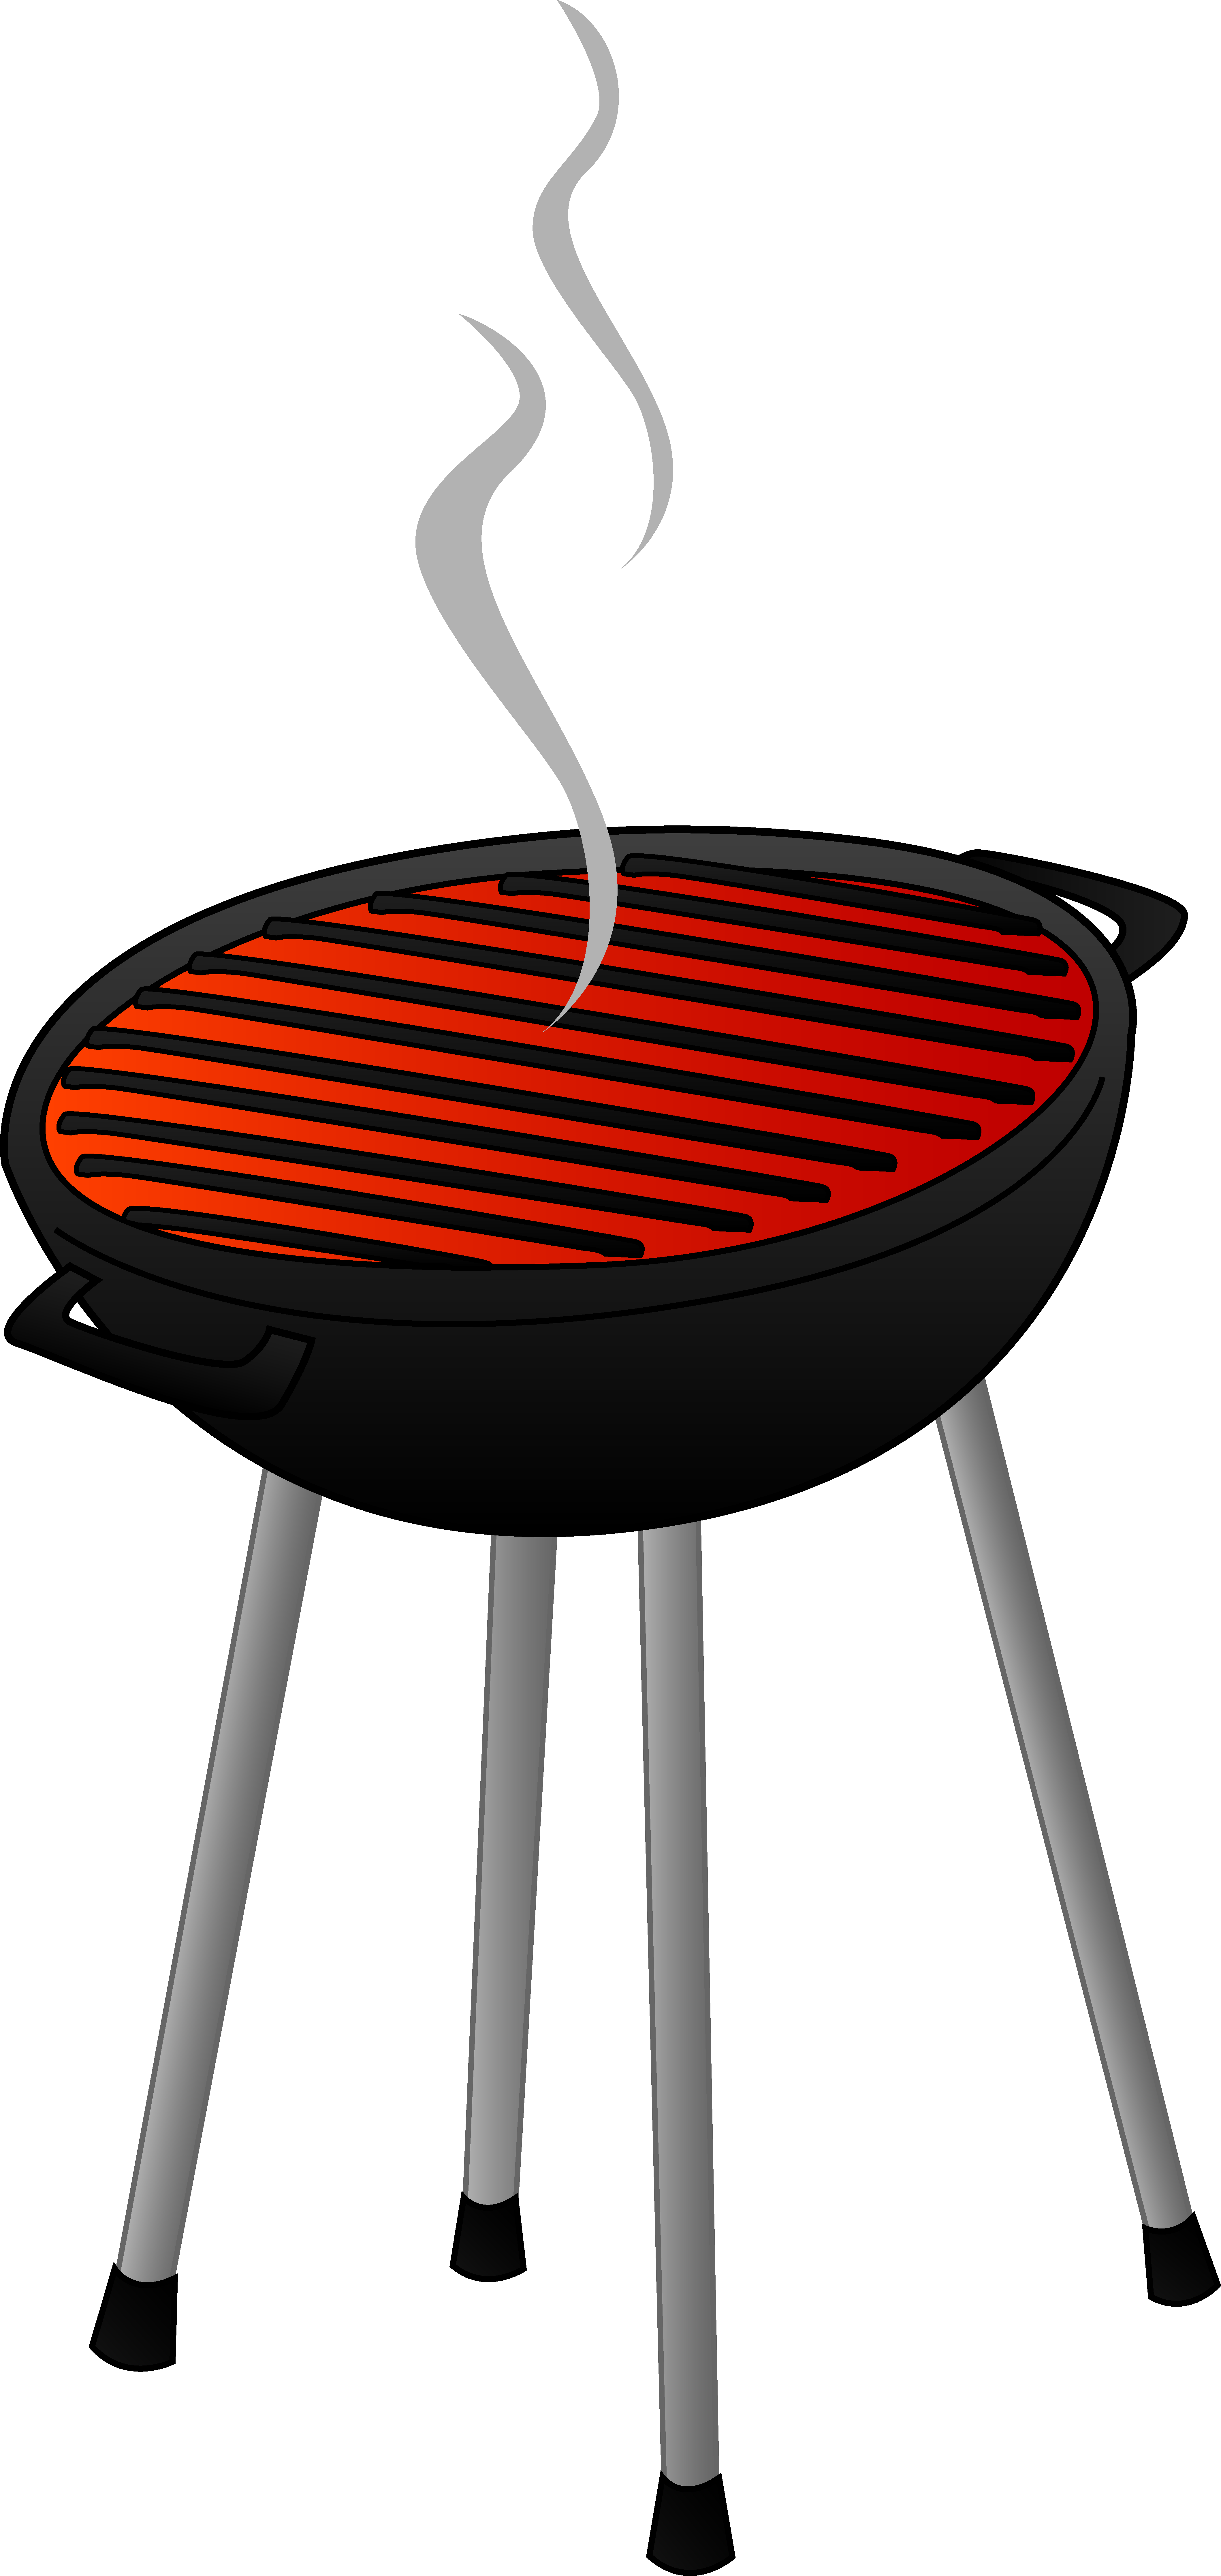 Bbq clipart border free images 5